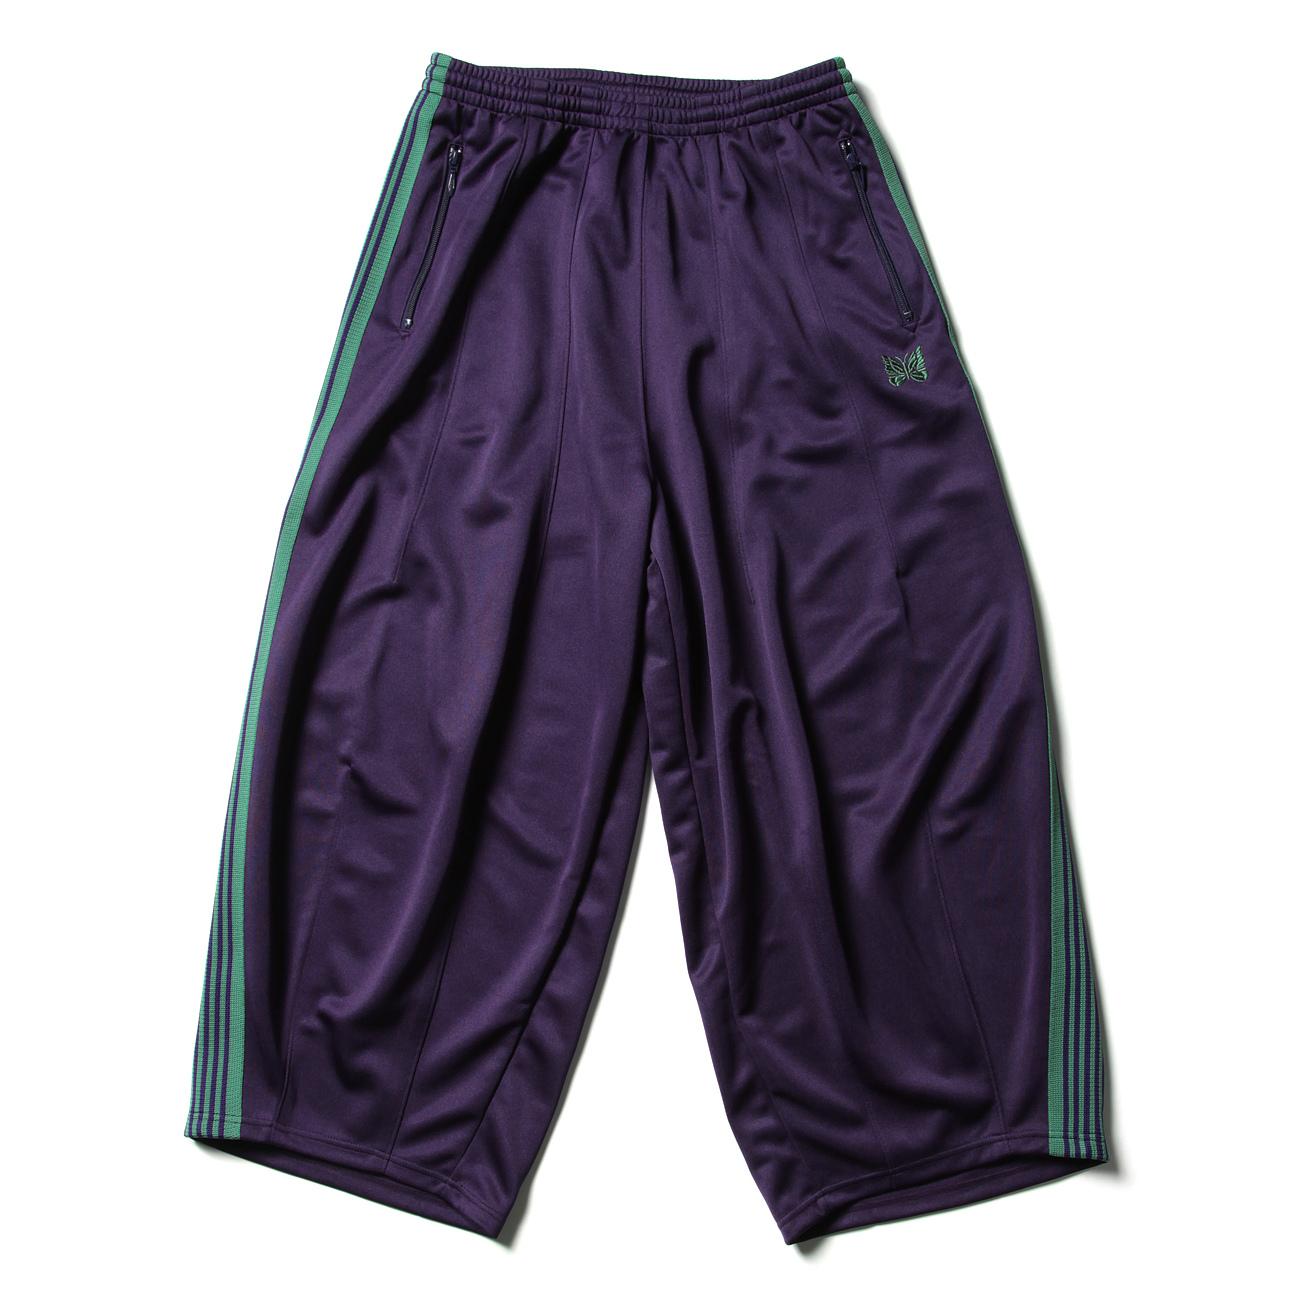 H.D. Track Pant - Poly Smooth - Eggplant